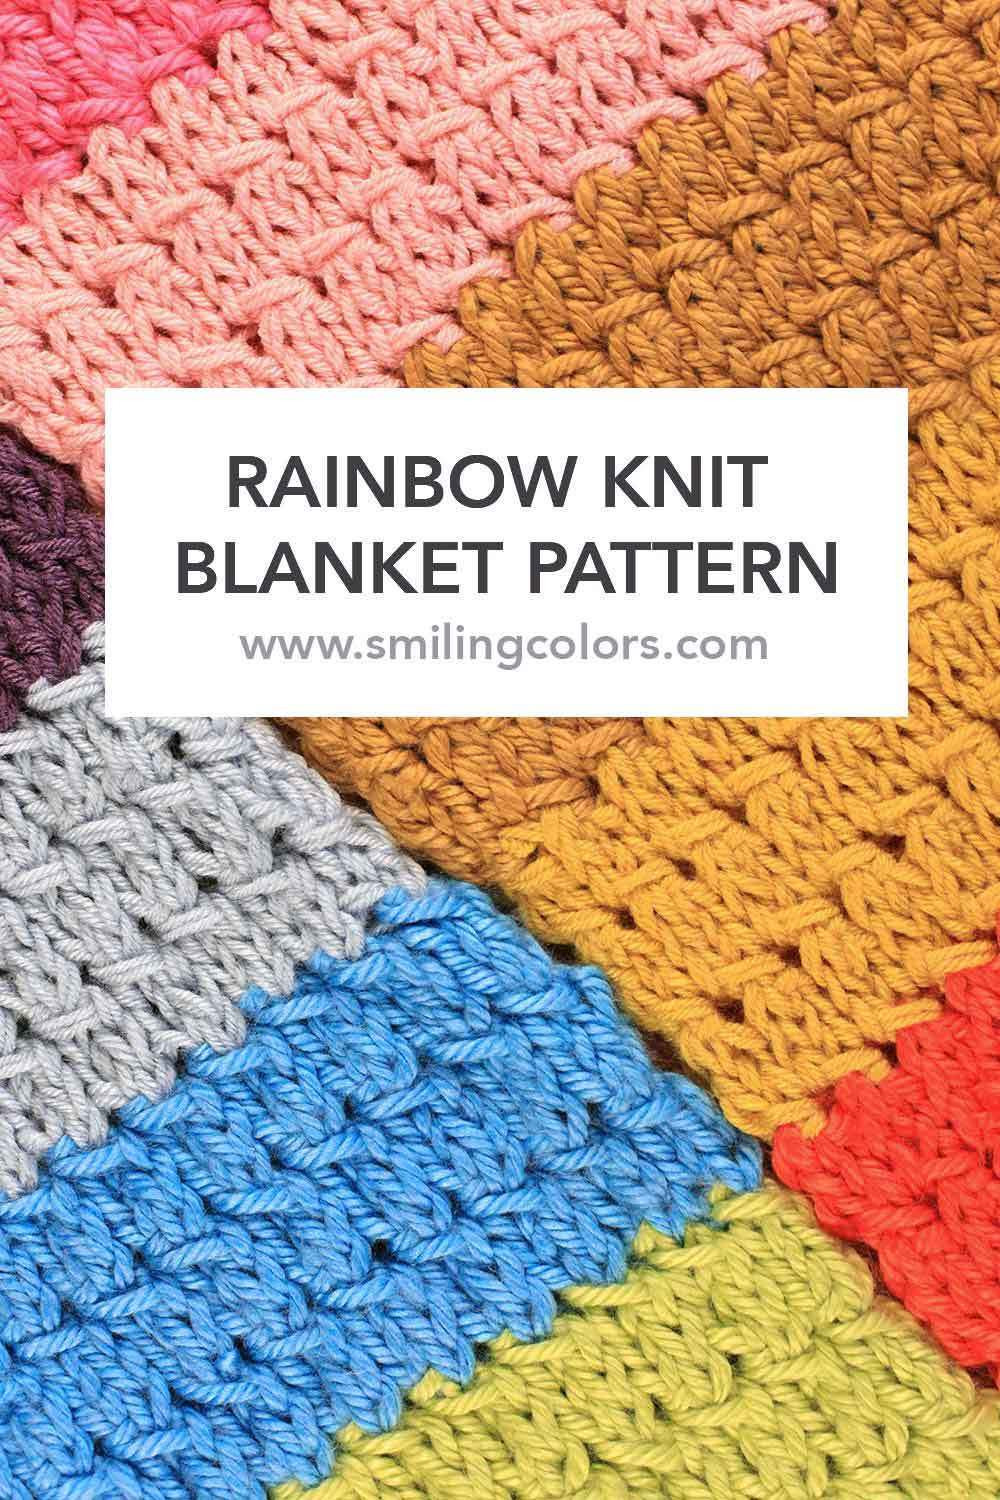 Chunky Yarn Patterns Luxury Rainbow Knit Blanket Pattern with An Video too Of Adorable 41 Photos Chunky Yarn Patterns